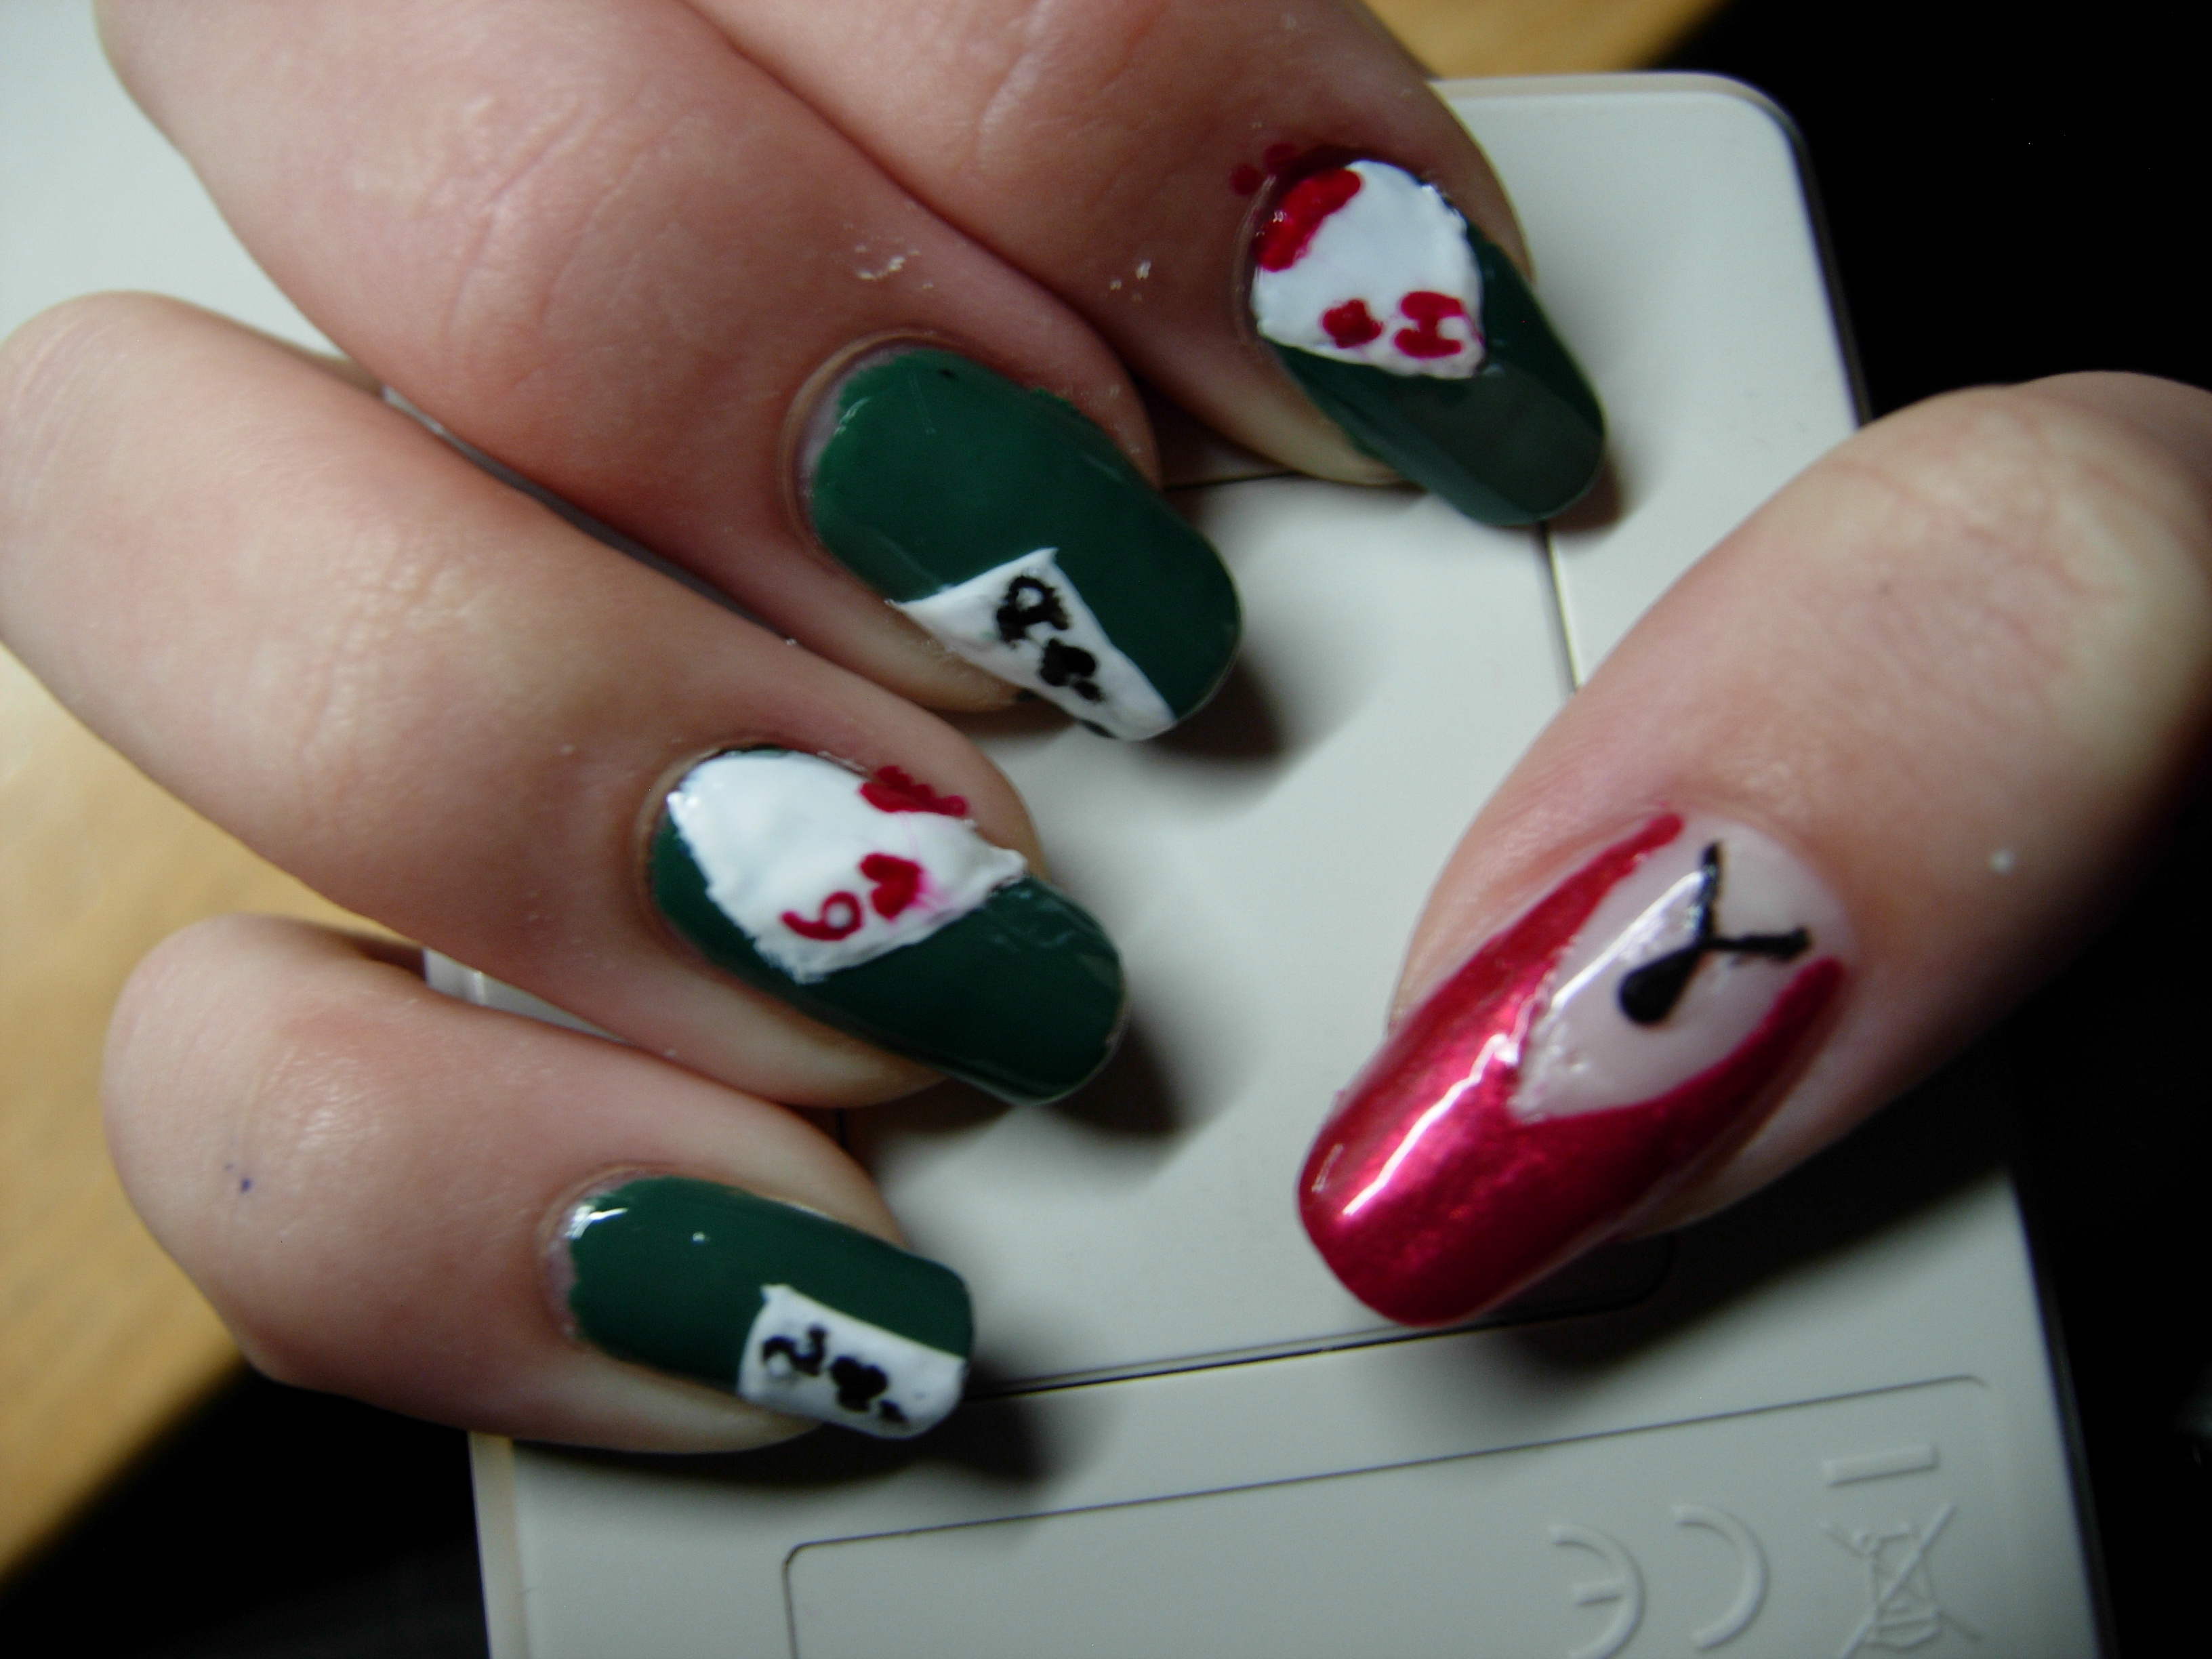 Poker nails 2 by SarahJacky